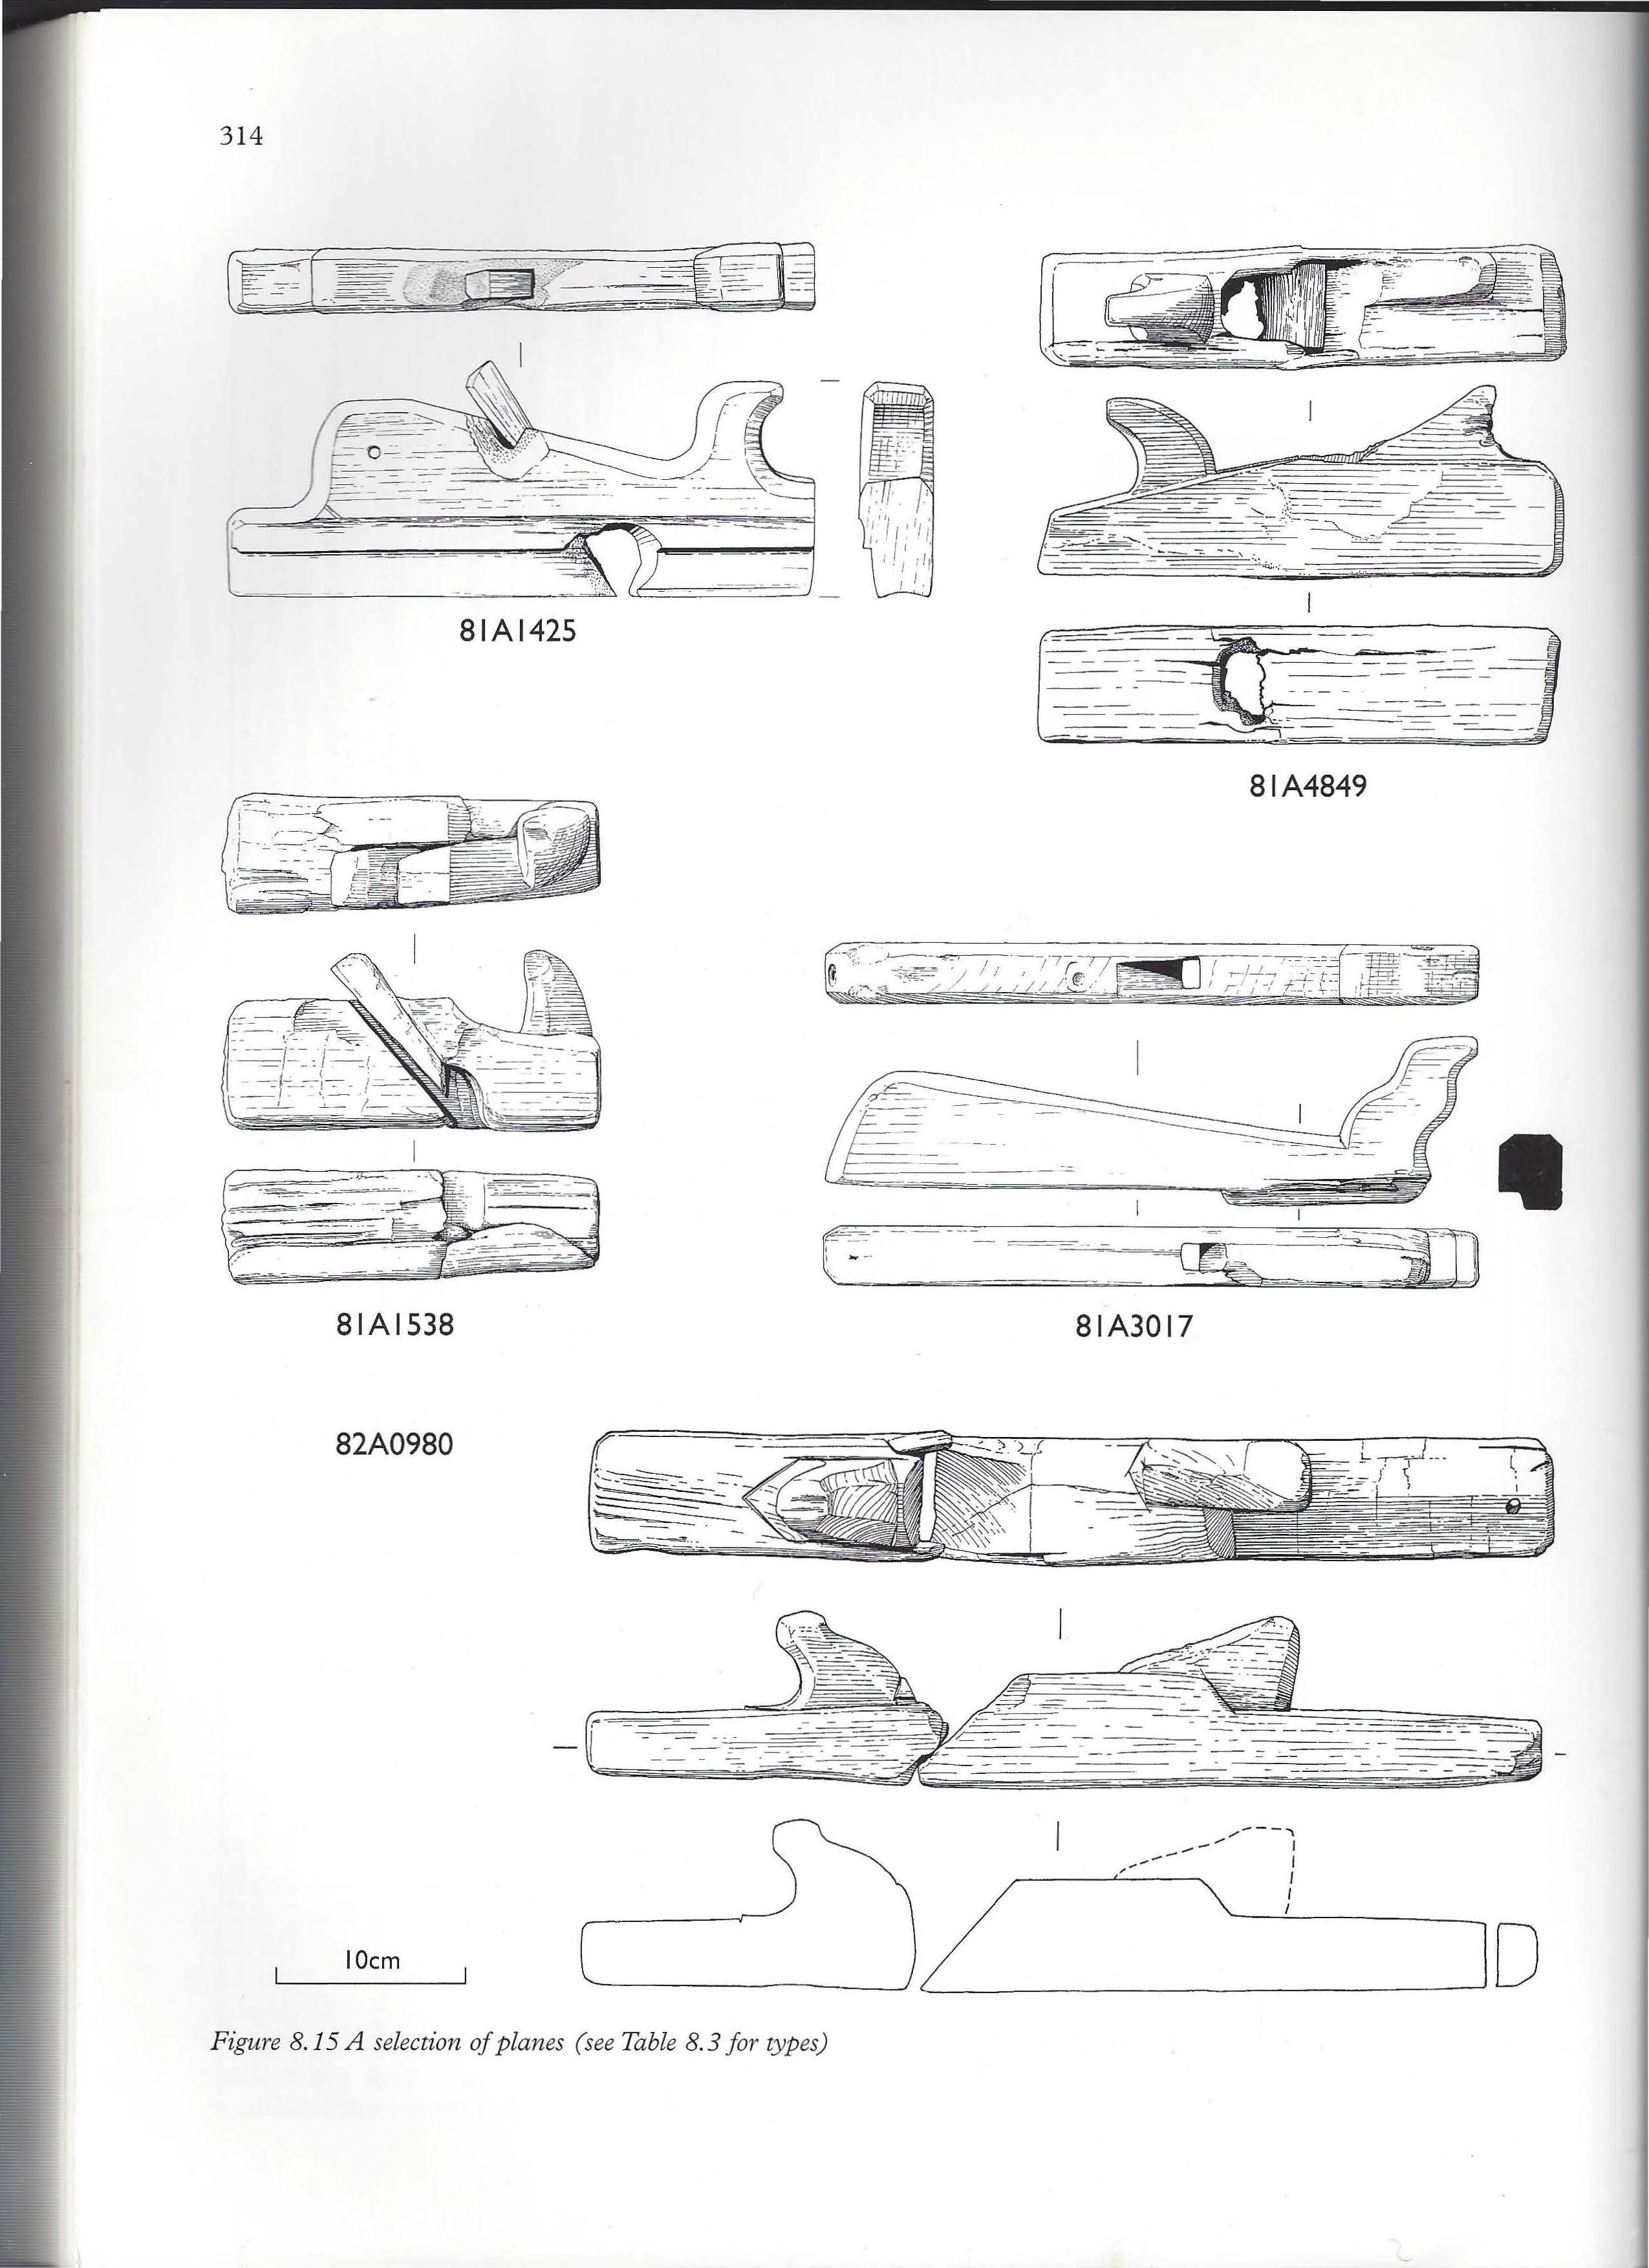 types of woodworking planes. carpenters plane from mary rose, 1545 types of woodworking planes e